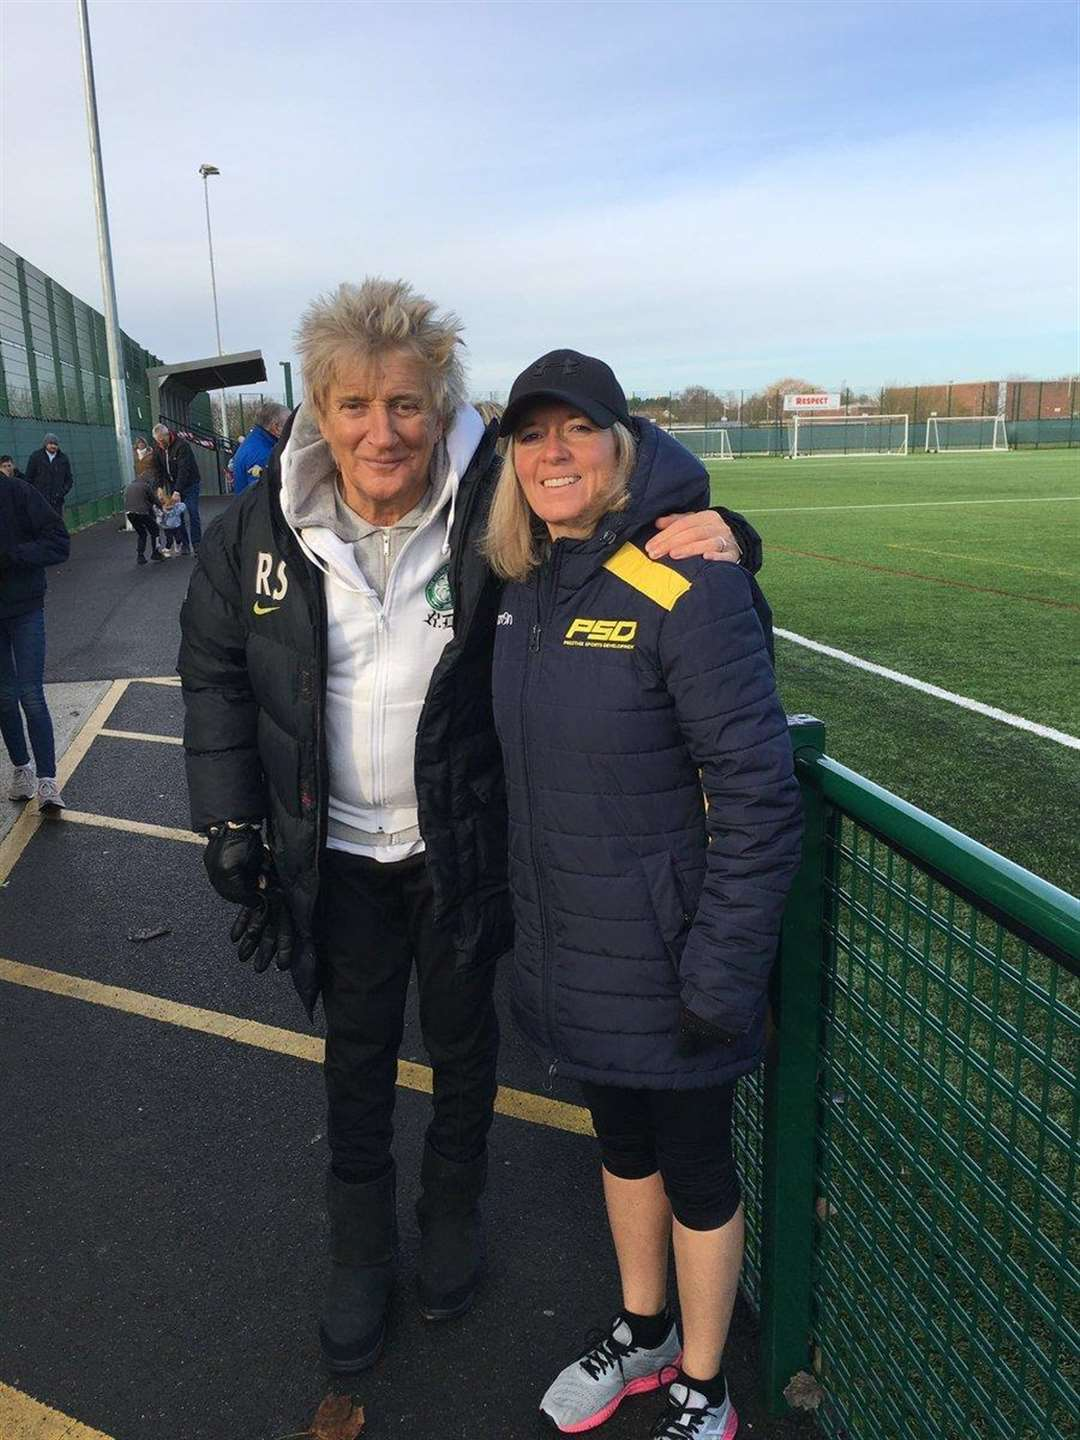 Sir Rod Stewart with Lisa Shulver during his visit to the New Croft in Haverhill